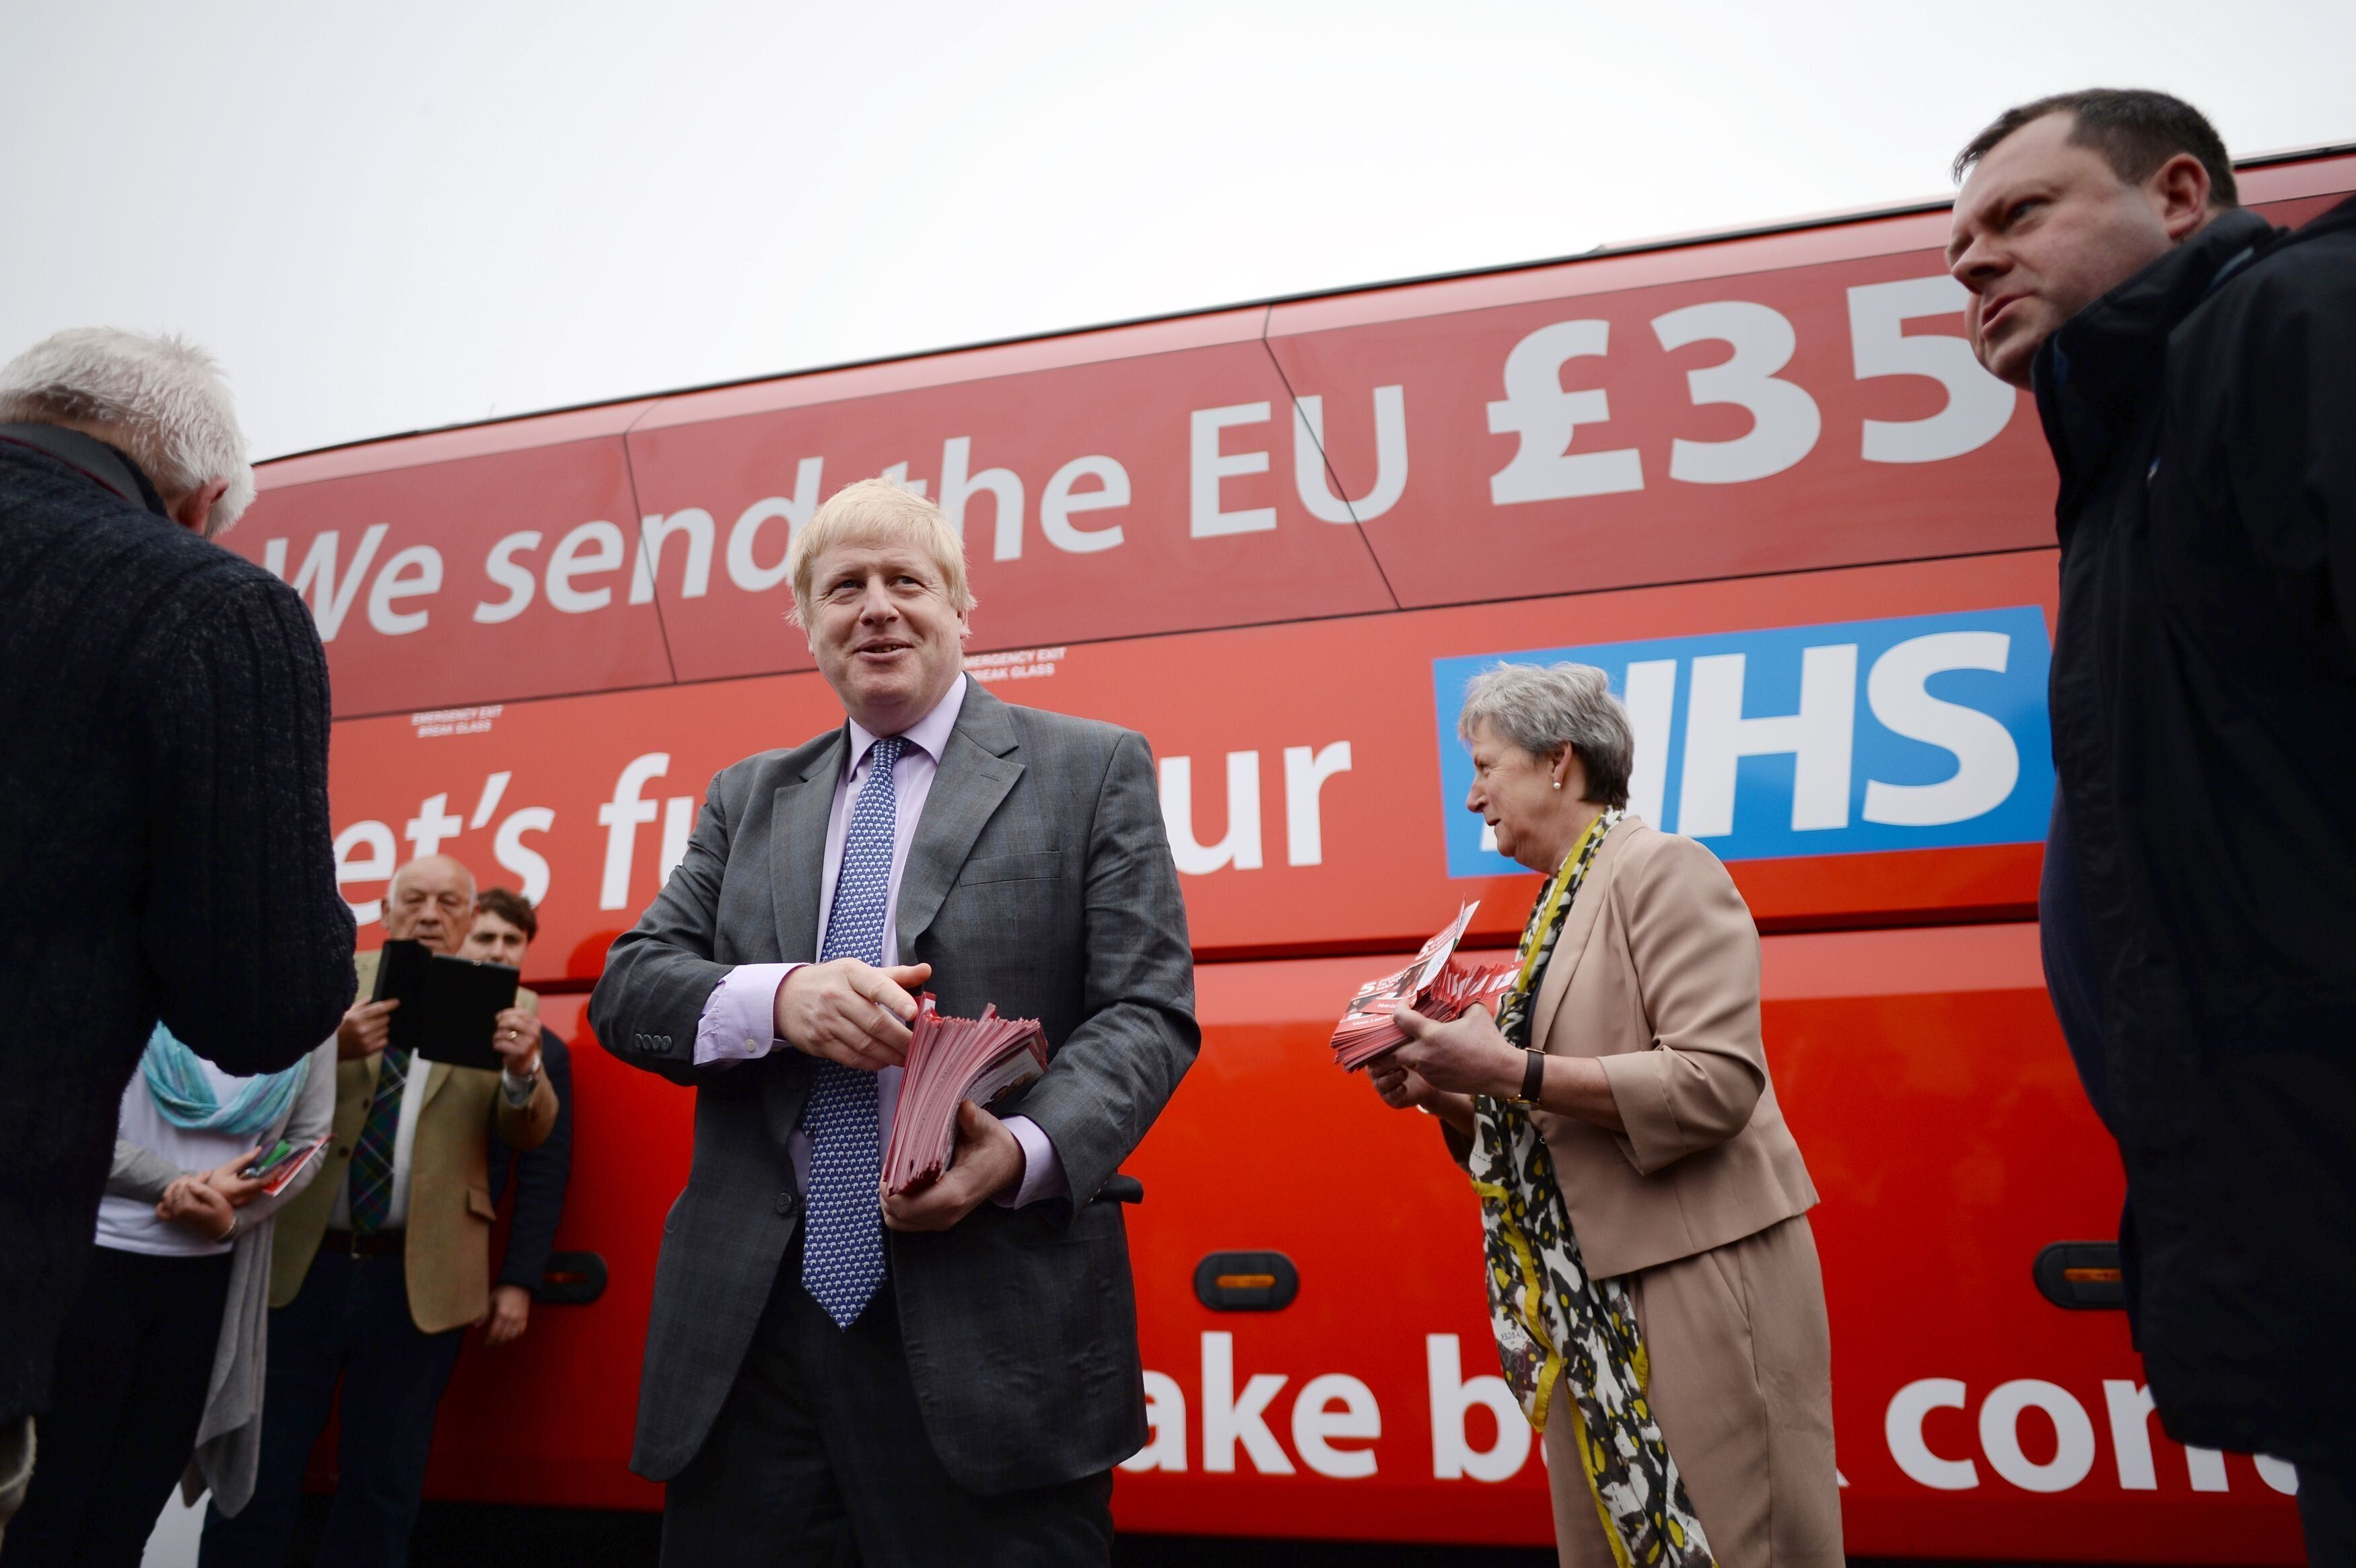 Former Mayor of London Boris Johnson speaks to Vote Leave campaigners as he boards the Vote Leave campaign bus in Truro, Cornwall, ahead of its inaugural journey which will criss-cross the country over the coming weeks to take the Brexit message to all corners of the UK before the June 23 referendum.